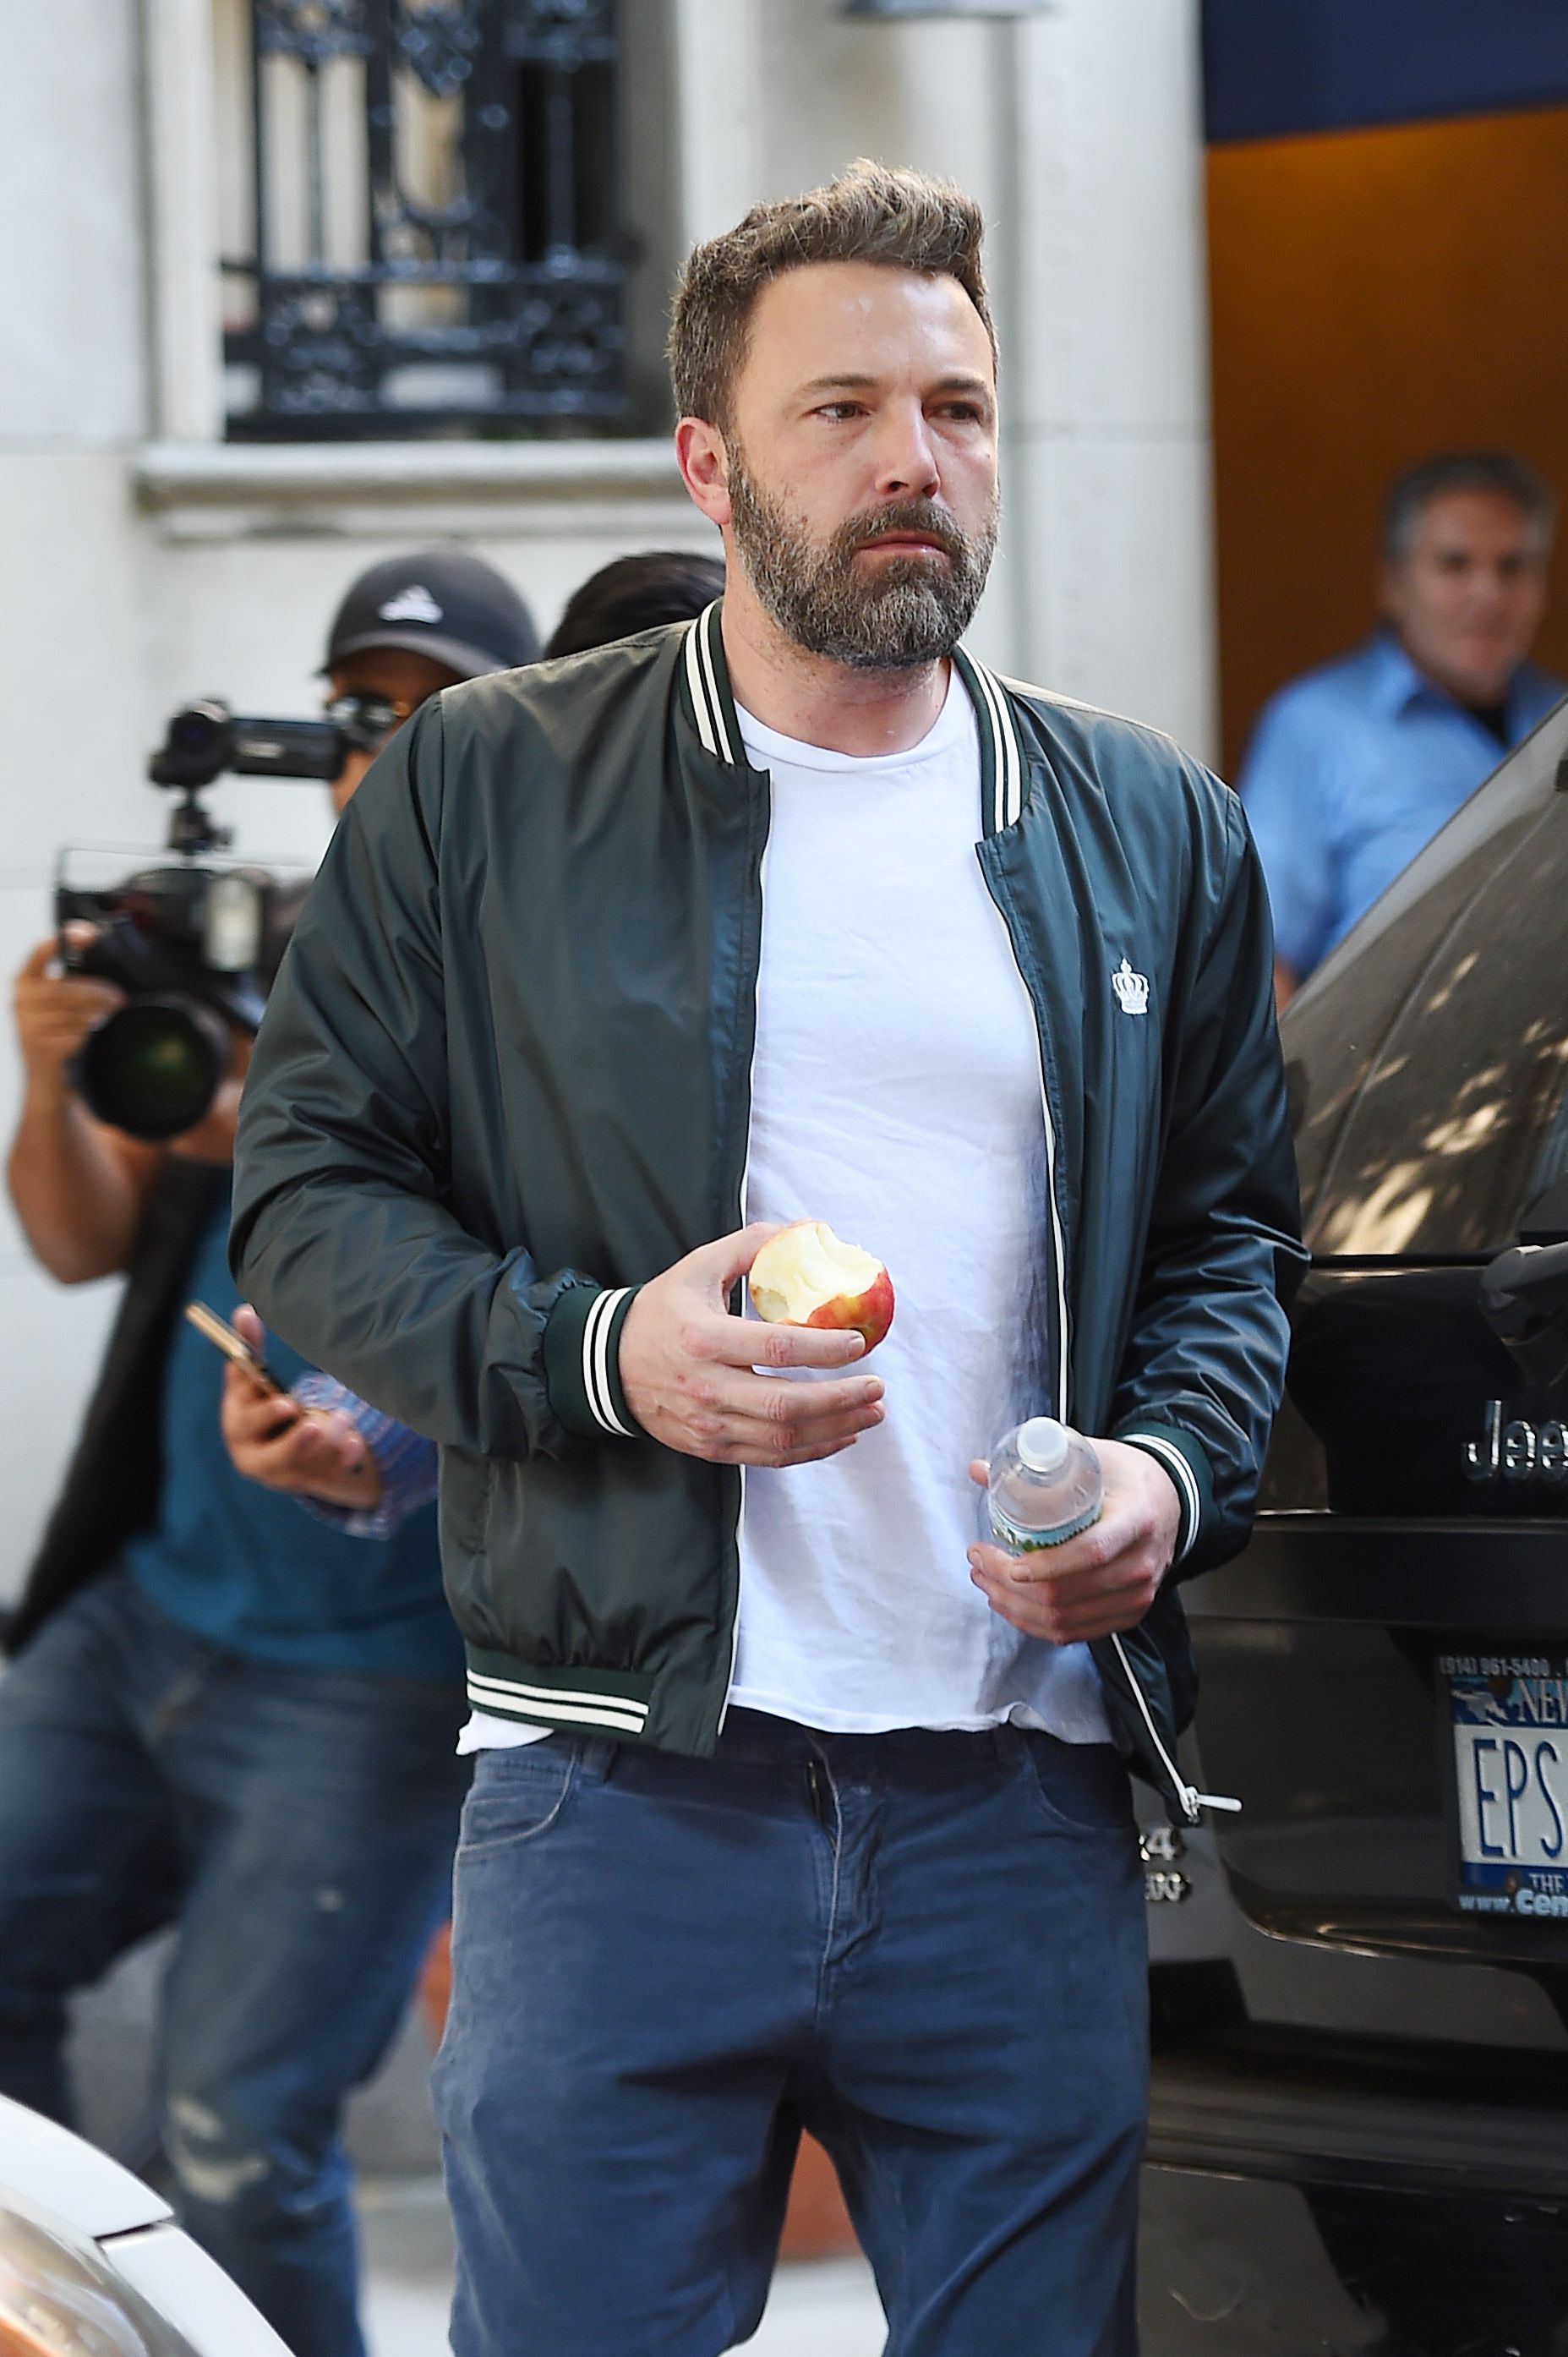 Ben Affleck eating an apple on September 11, 2017 in New York, New York. | Photo: Getty Images